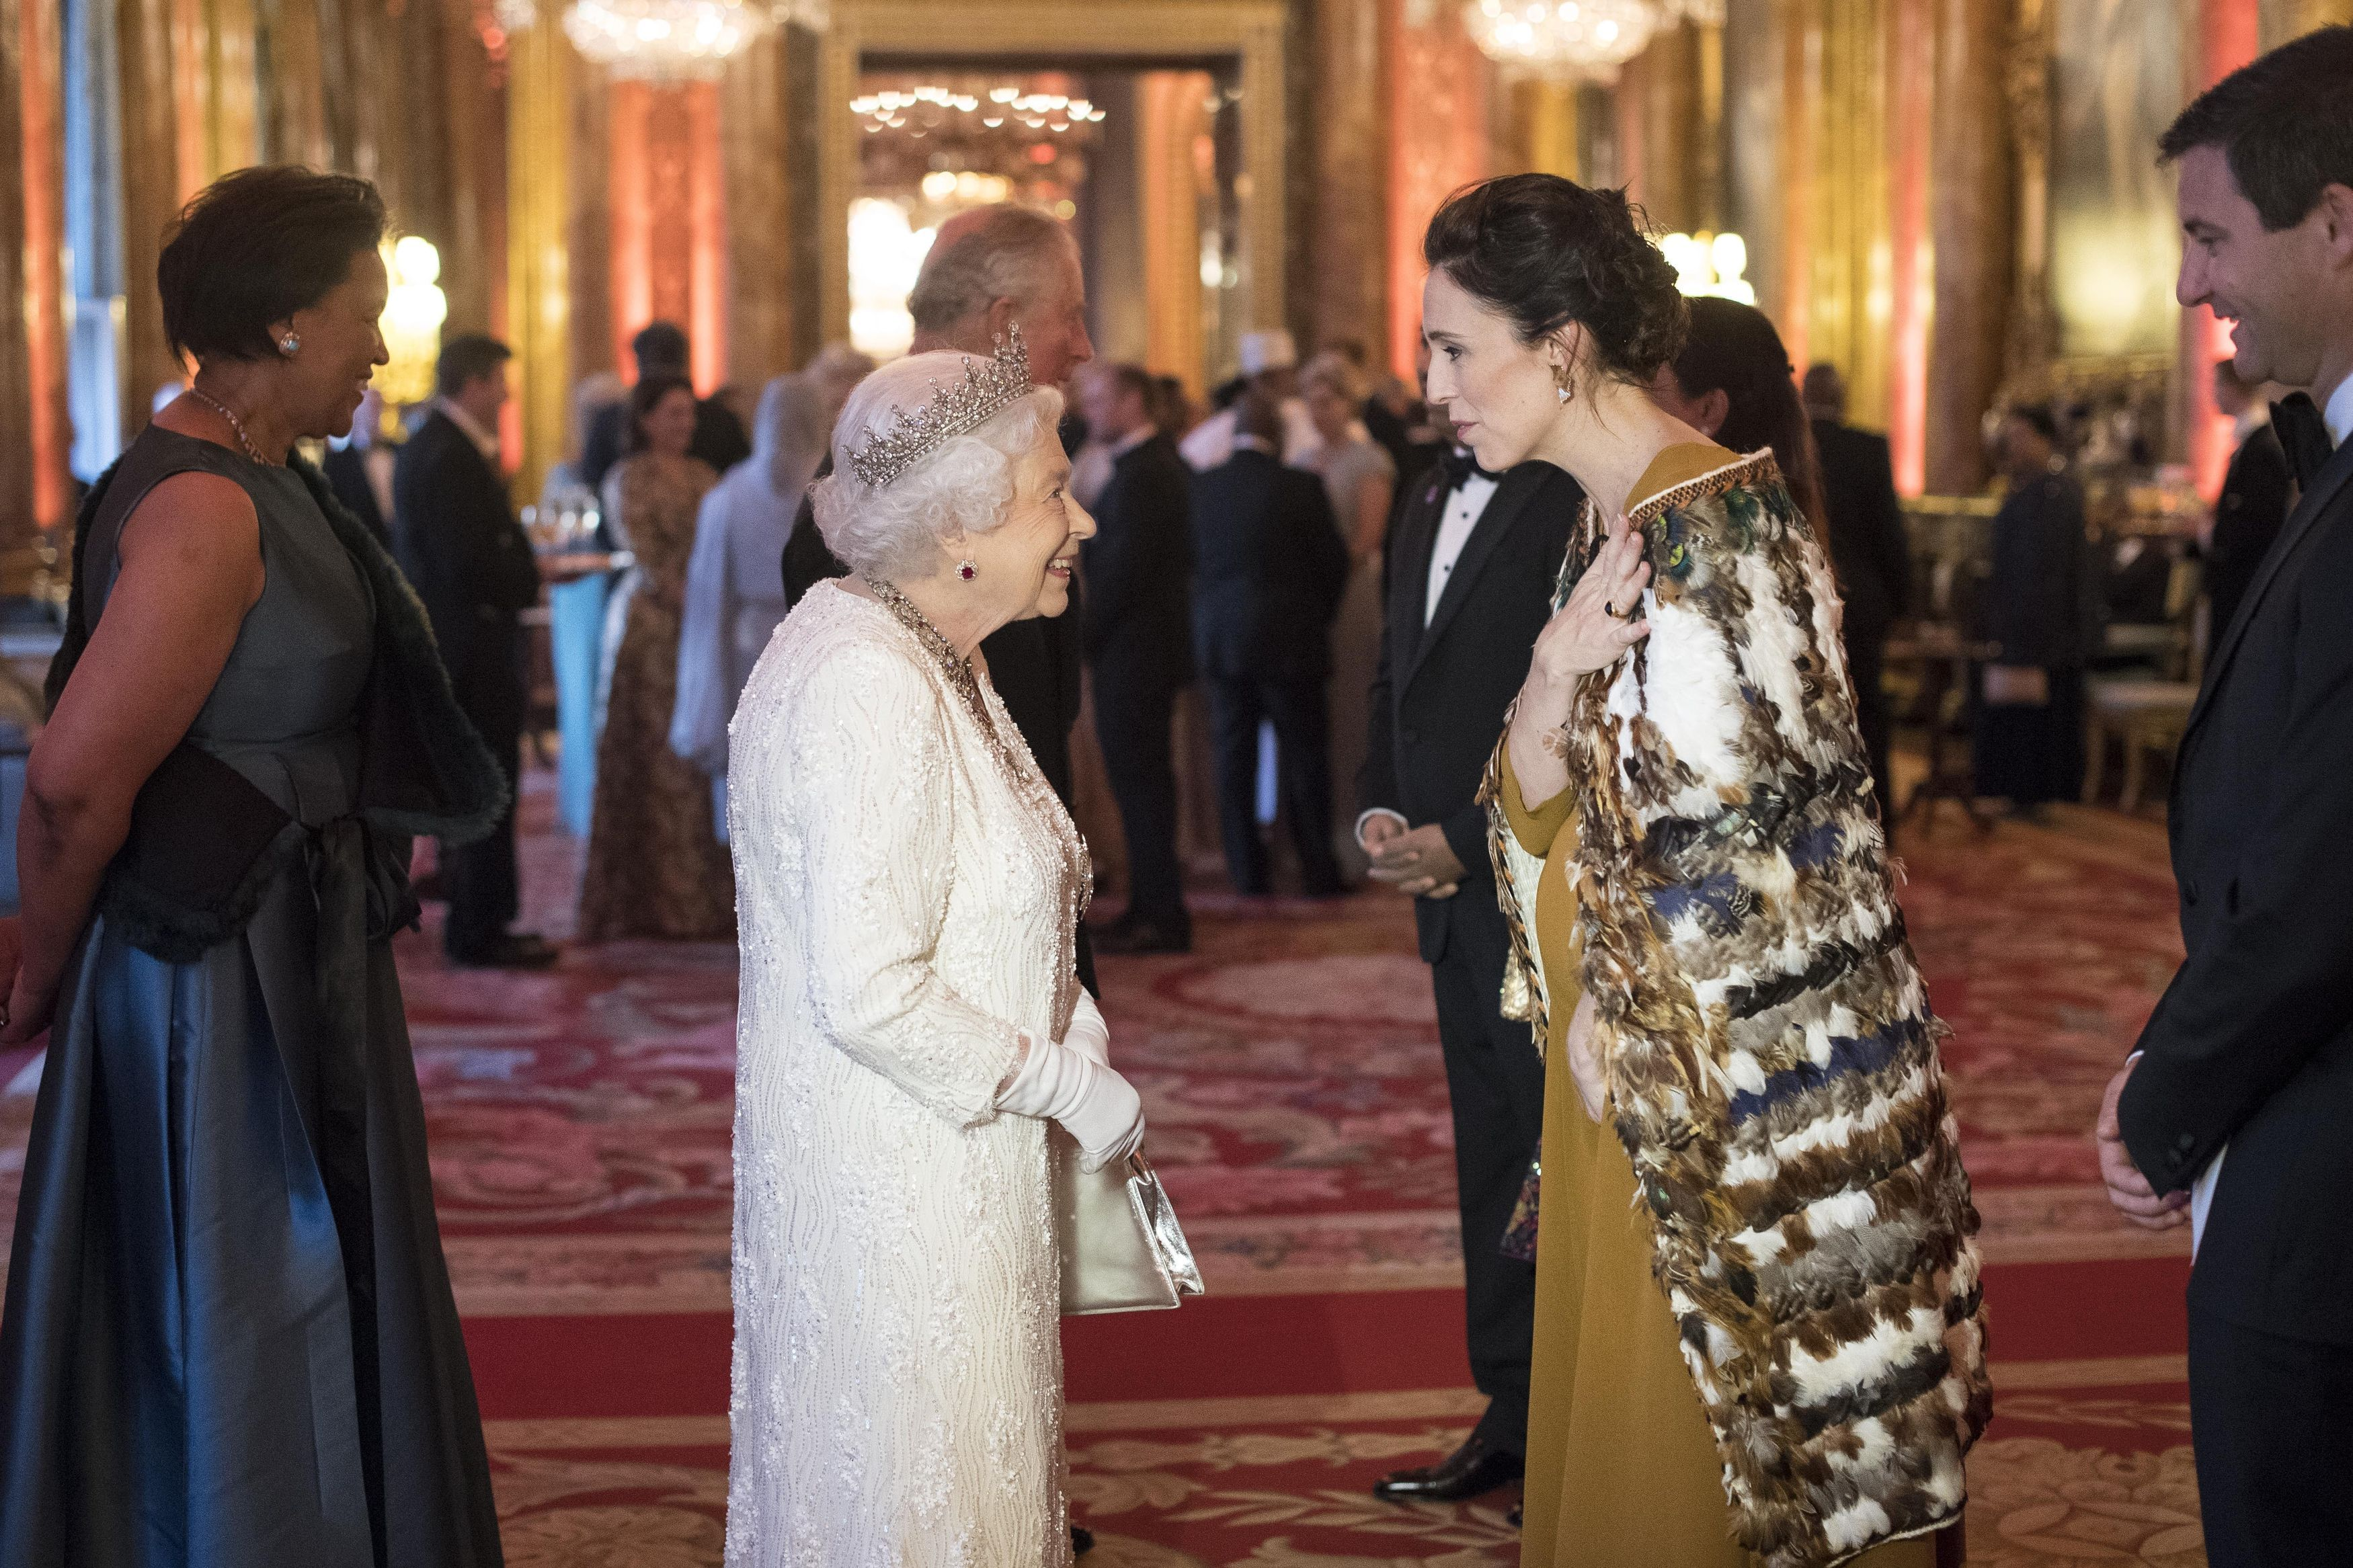 Queen Elizabeth II greets Jacinda Ardern, Prime Minister of New Zealand at during the Commonwealth Heads of Government Meeting at Buckingham Palace on April 19, 2018 in London, England.